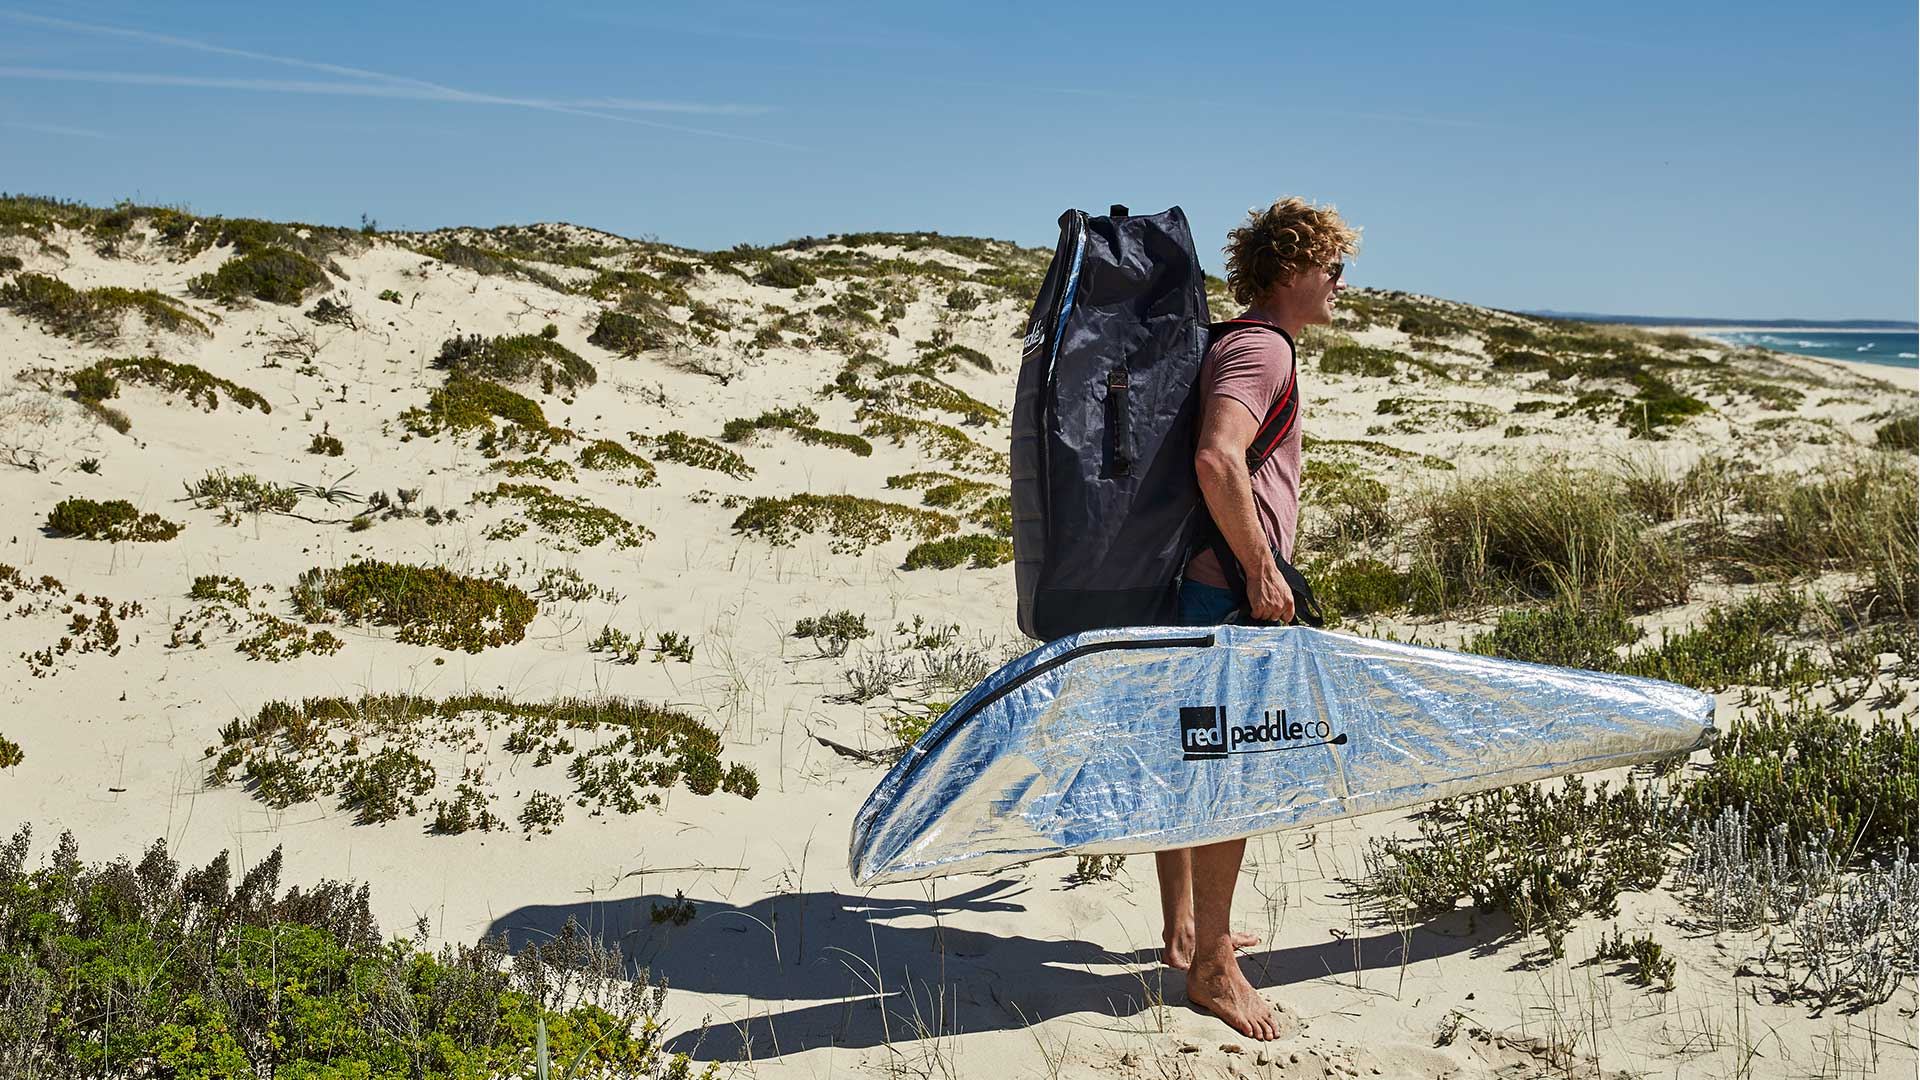 redpaddleco-107-windsurf-inflatable-paddle-board-desktop-gallery-cargo